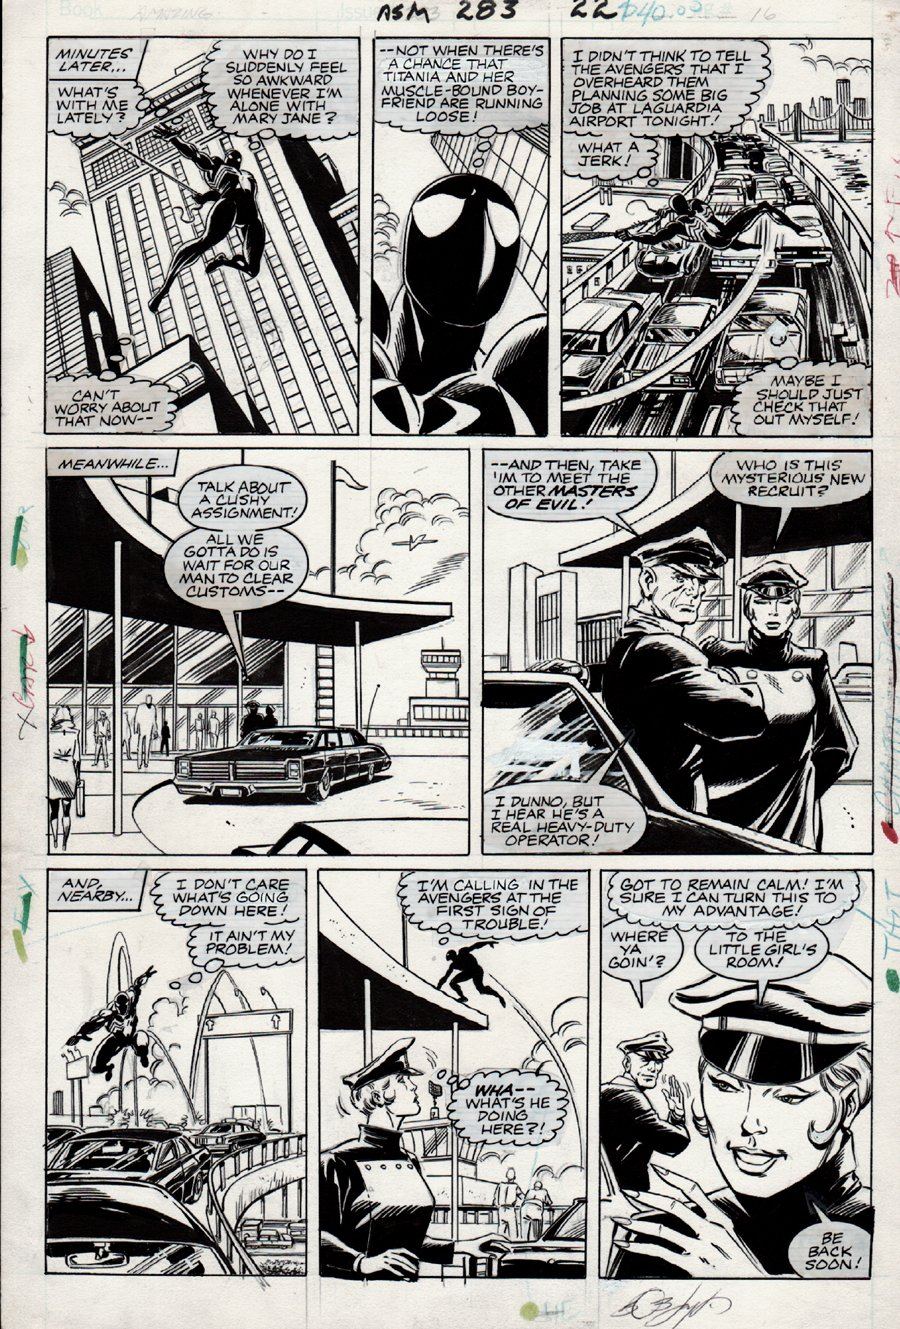 Amazing Spider-Man #283 p 16 (1983) SOLD SOLD SOLD!